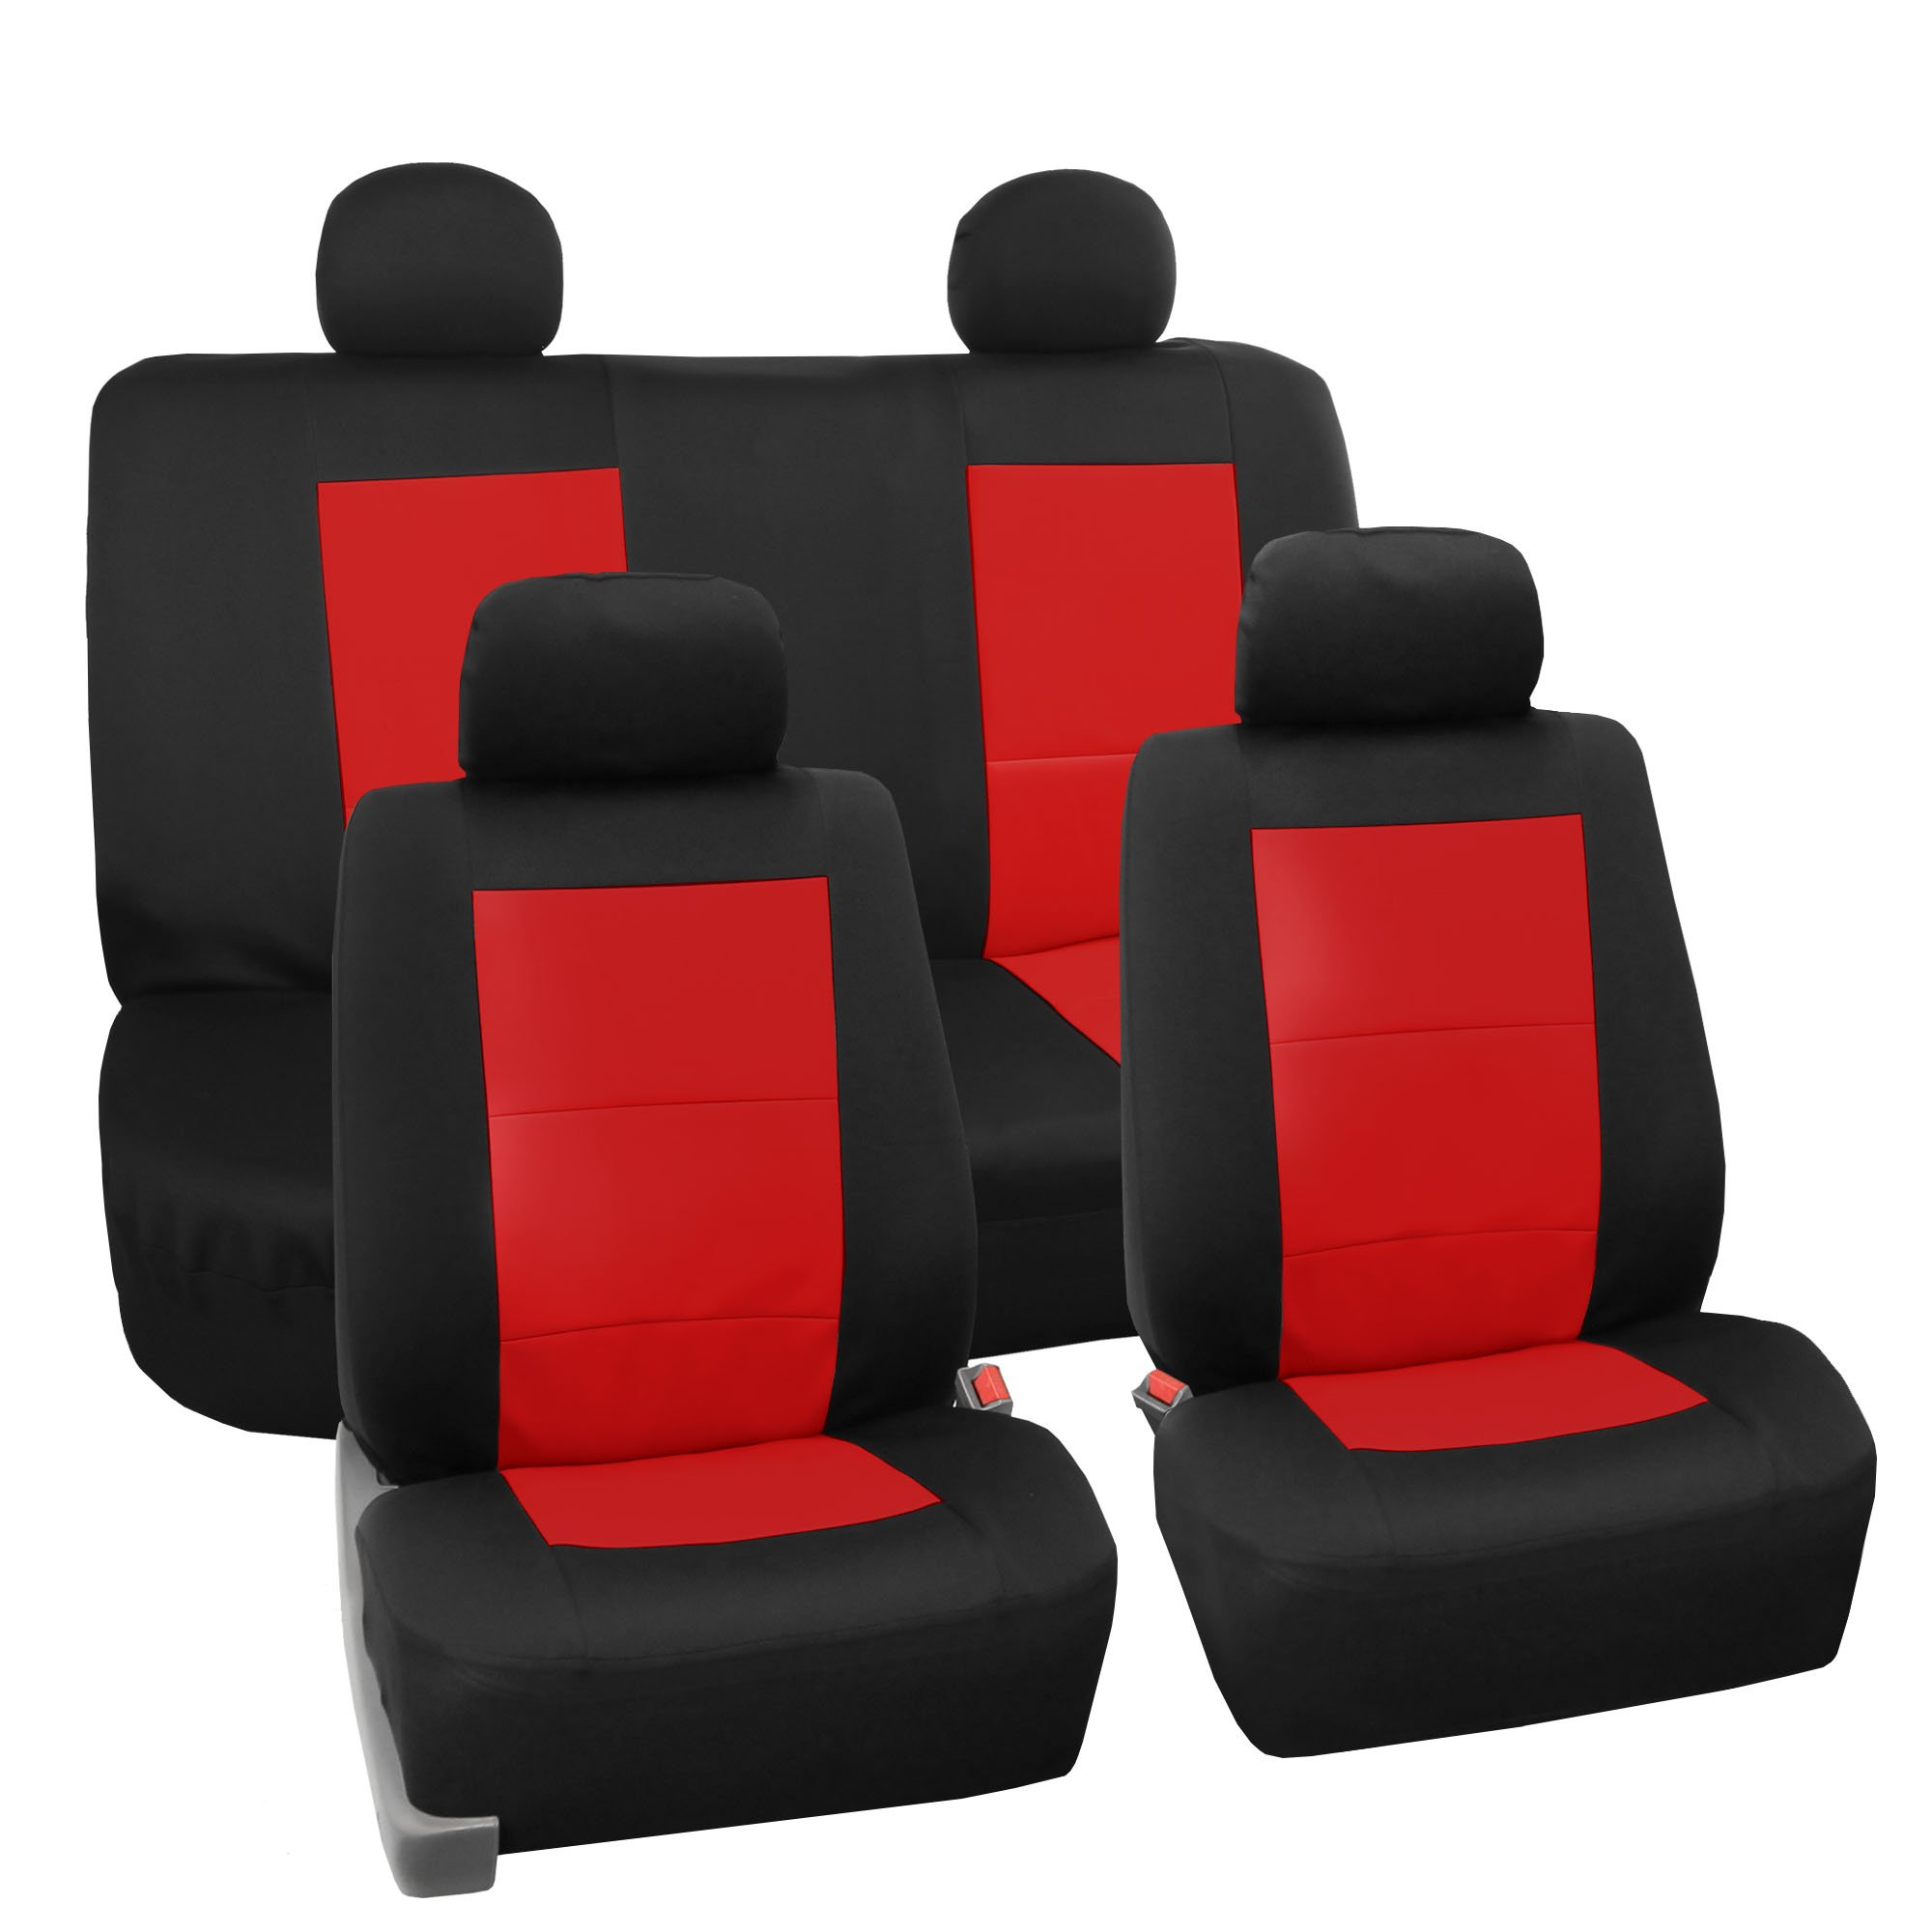 FH Group FB085RED114 Seat Cover Neoprene Blend Waterproof Seat covers Full Set with Bench Red by FH Group